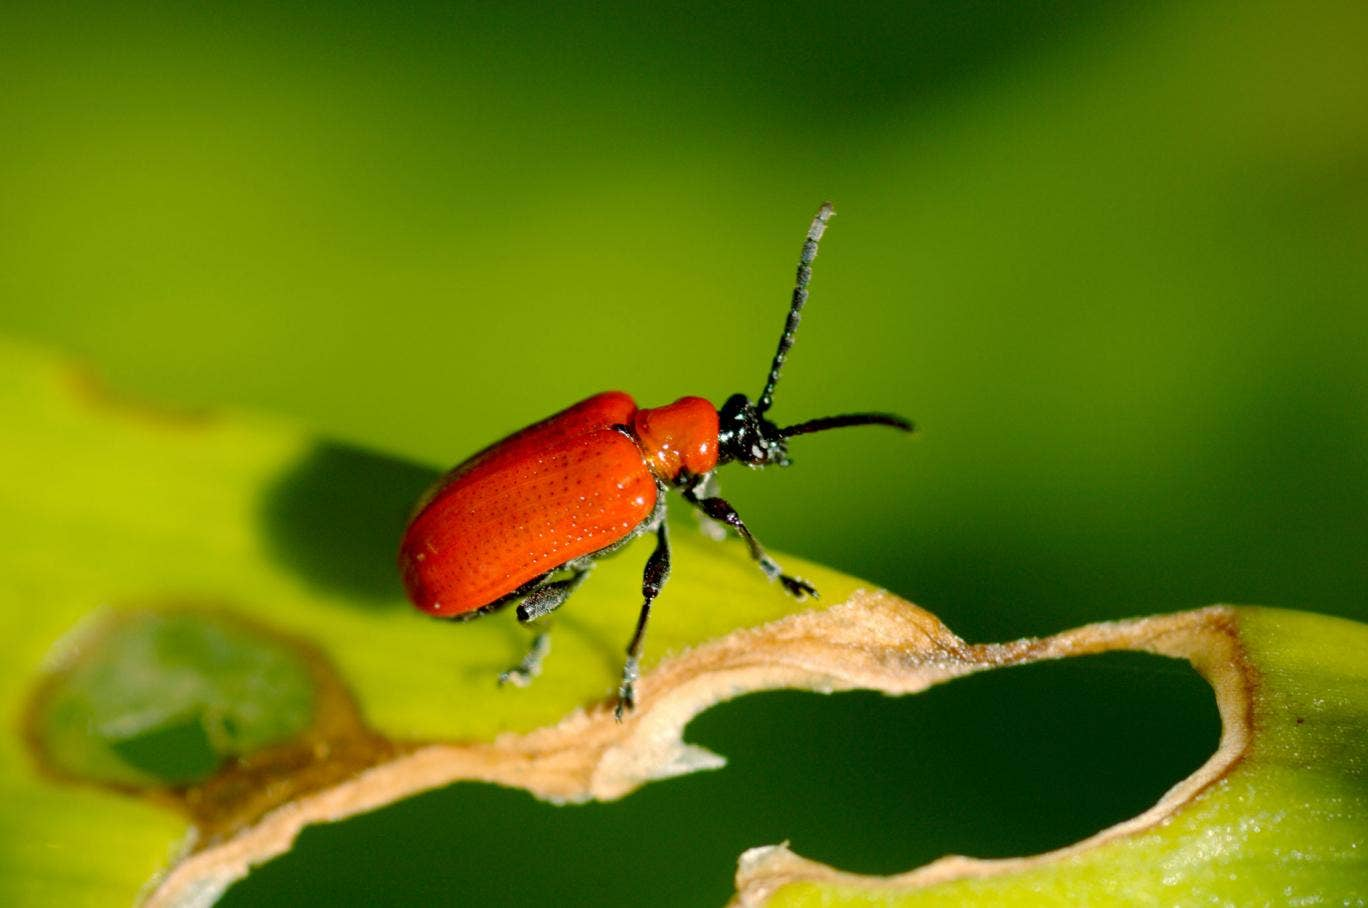 Over the course of spring and summer, a female lily beetle can lay 200-300 eggs